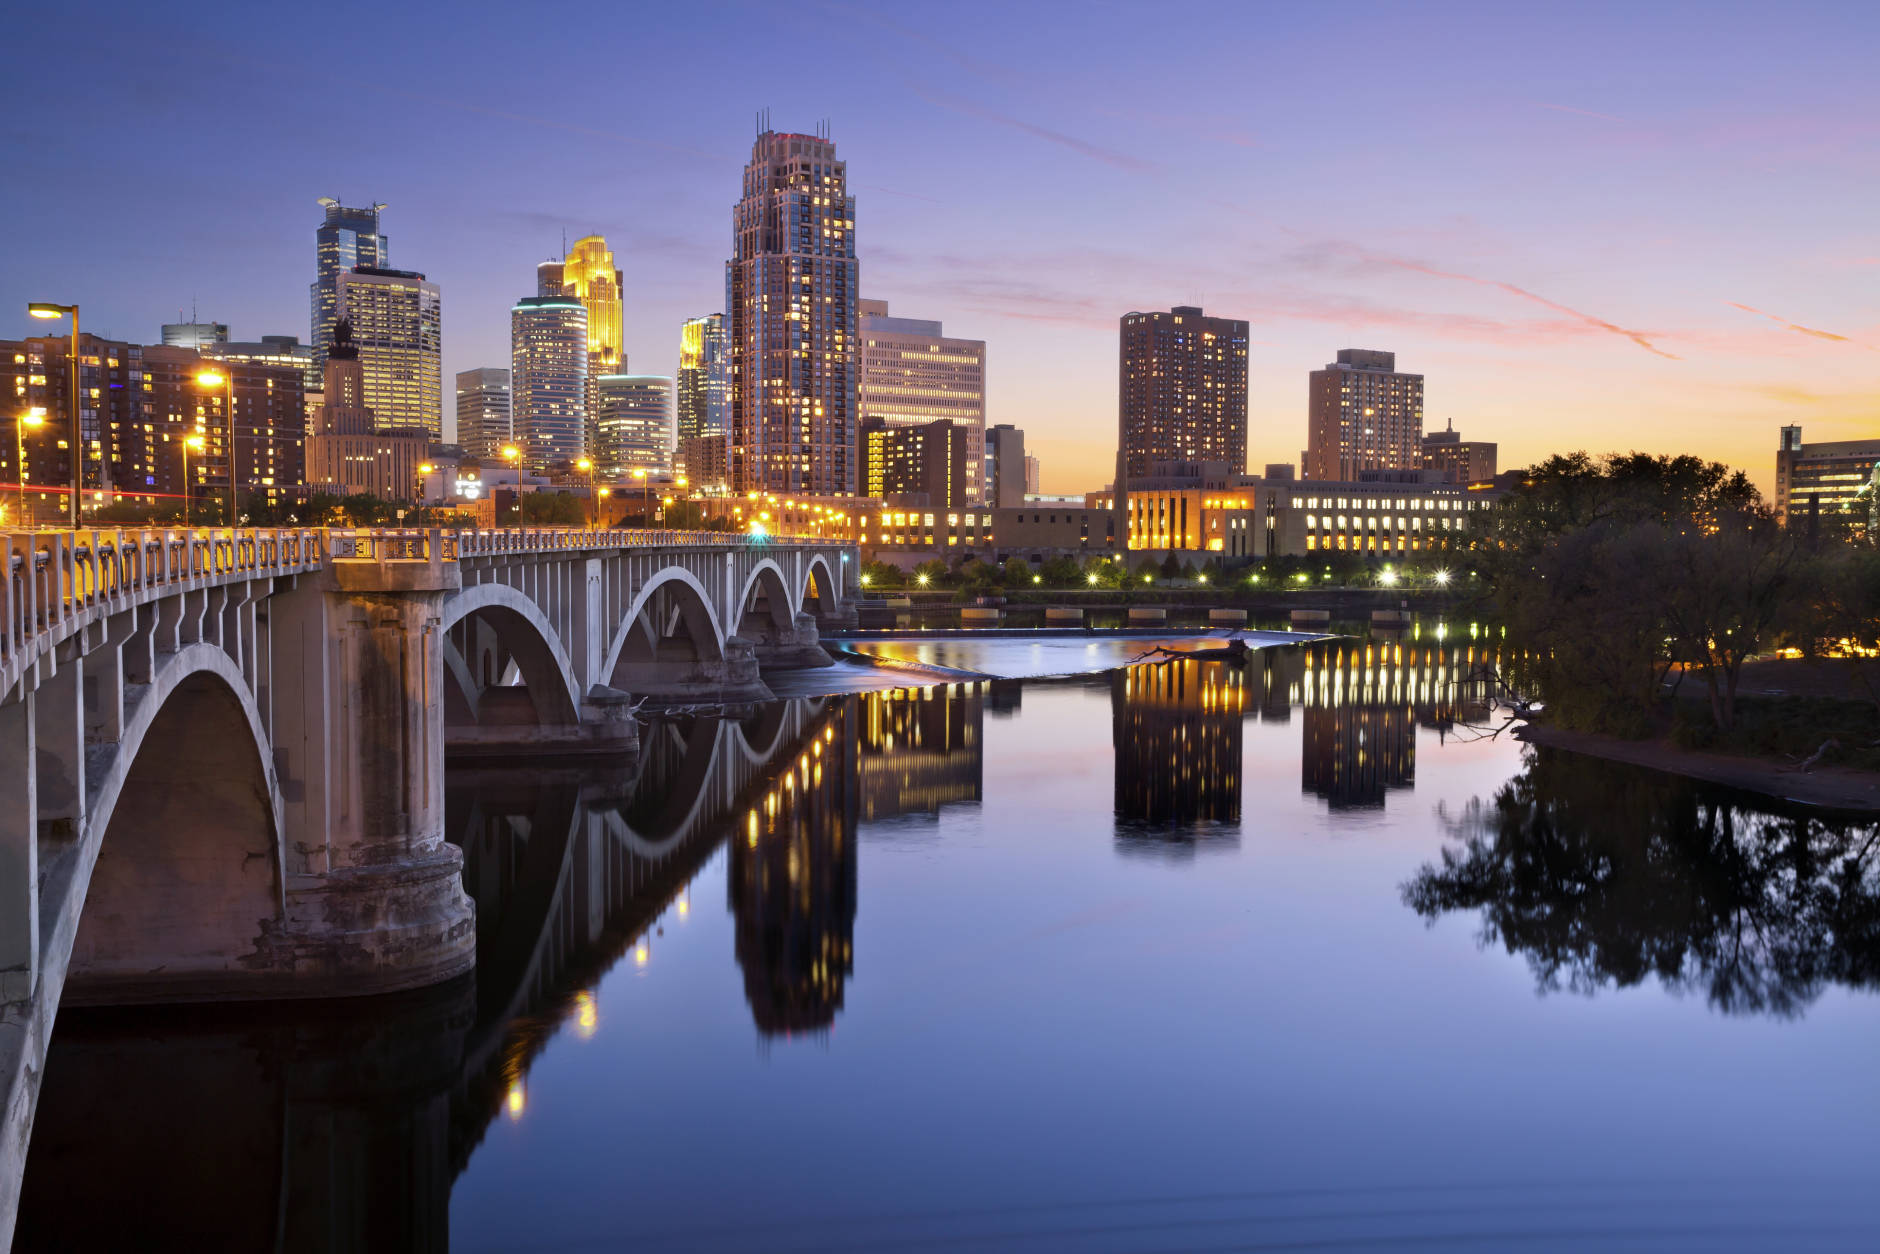 """14. Minneapolis, Minnesota  The Land of 10,000 Lakes' most populous city lands at No. 14 in Condé Nast Traveler's """"The Best Big Cities in the U.S."""" With abundant culture and outdoor life, there is much to do here all-year round. Even in the winter. (Getty Images/iStockphoto/RudyBalasko)"""